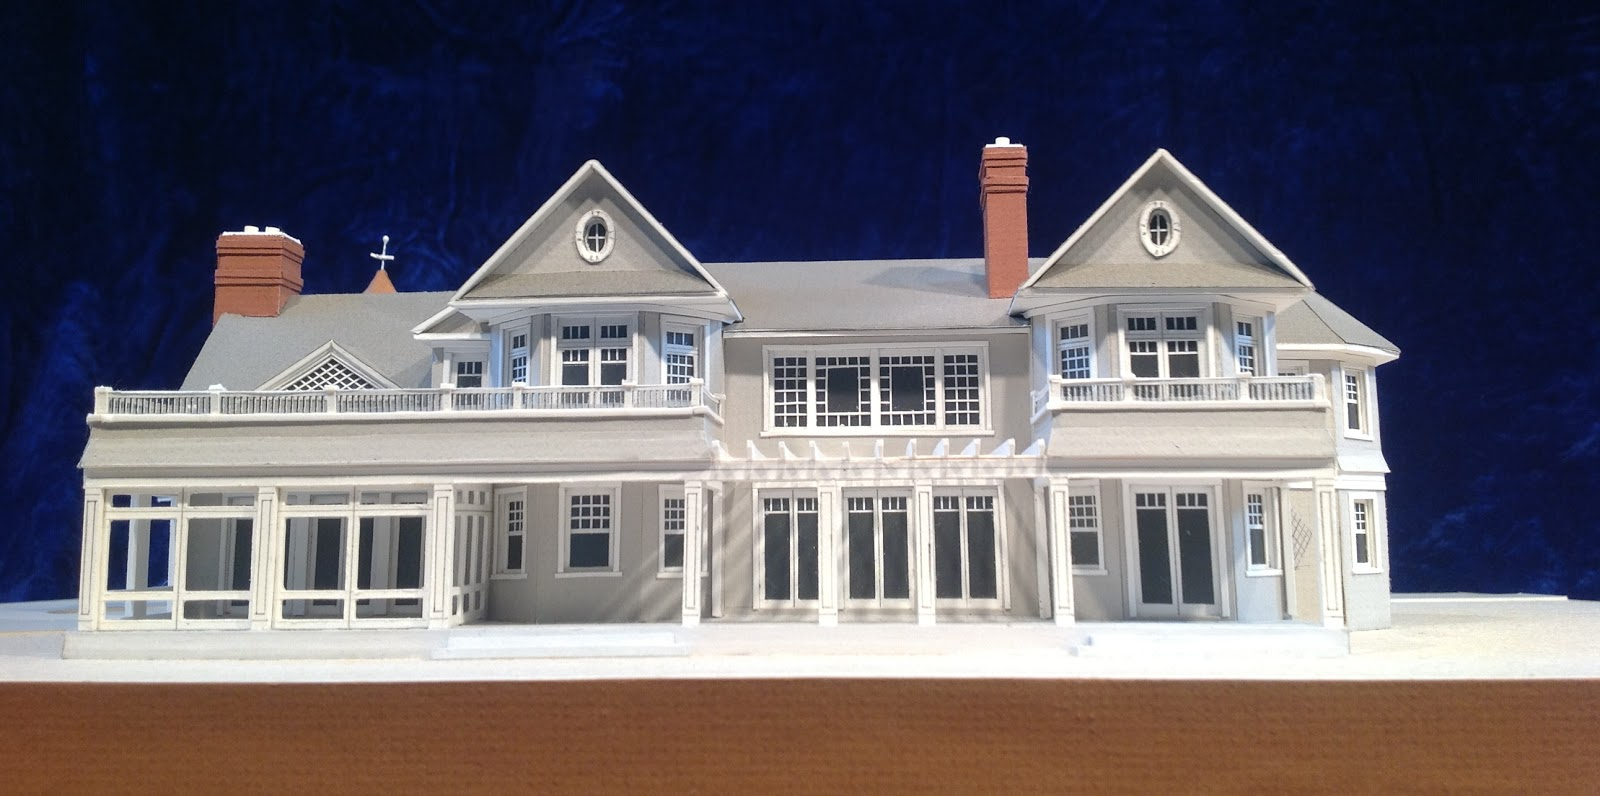 Architectural Model By Gary Lawrance, AIA Lawrance Architectural  Presentations Of A Hamptons Home Designed By John Laffey  Architect,Watermill, New York.